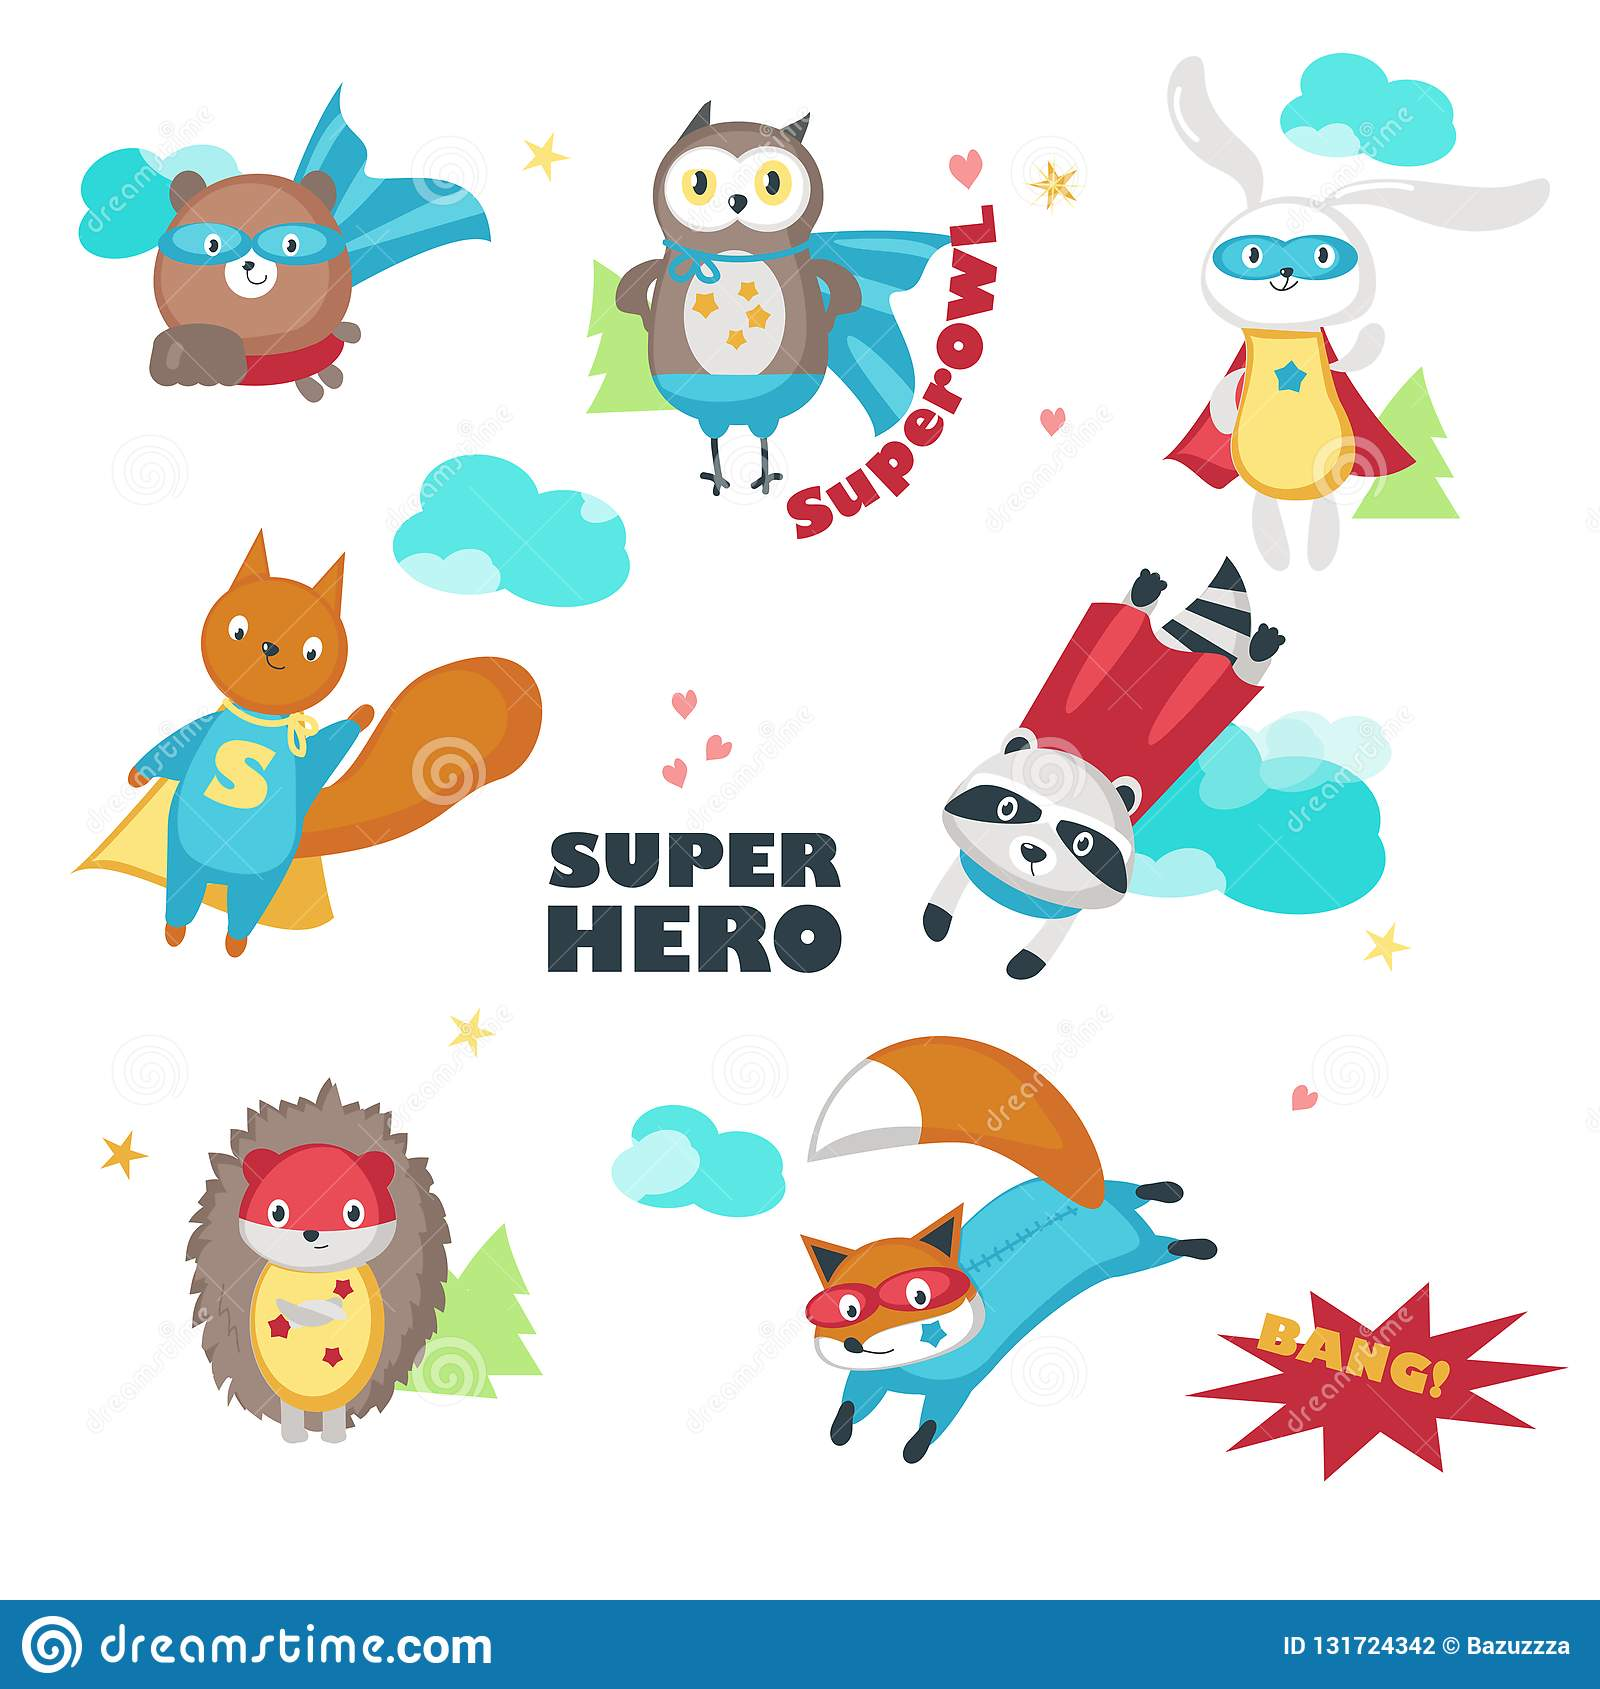 Superhero animals vector illustration isolated on white background cute little raccoon rabbit bear owl fox squirrel and hedgehog in super hero